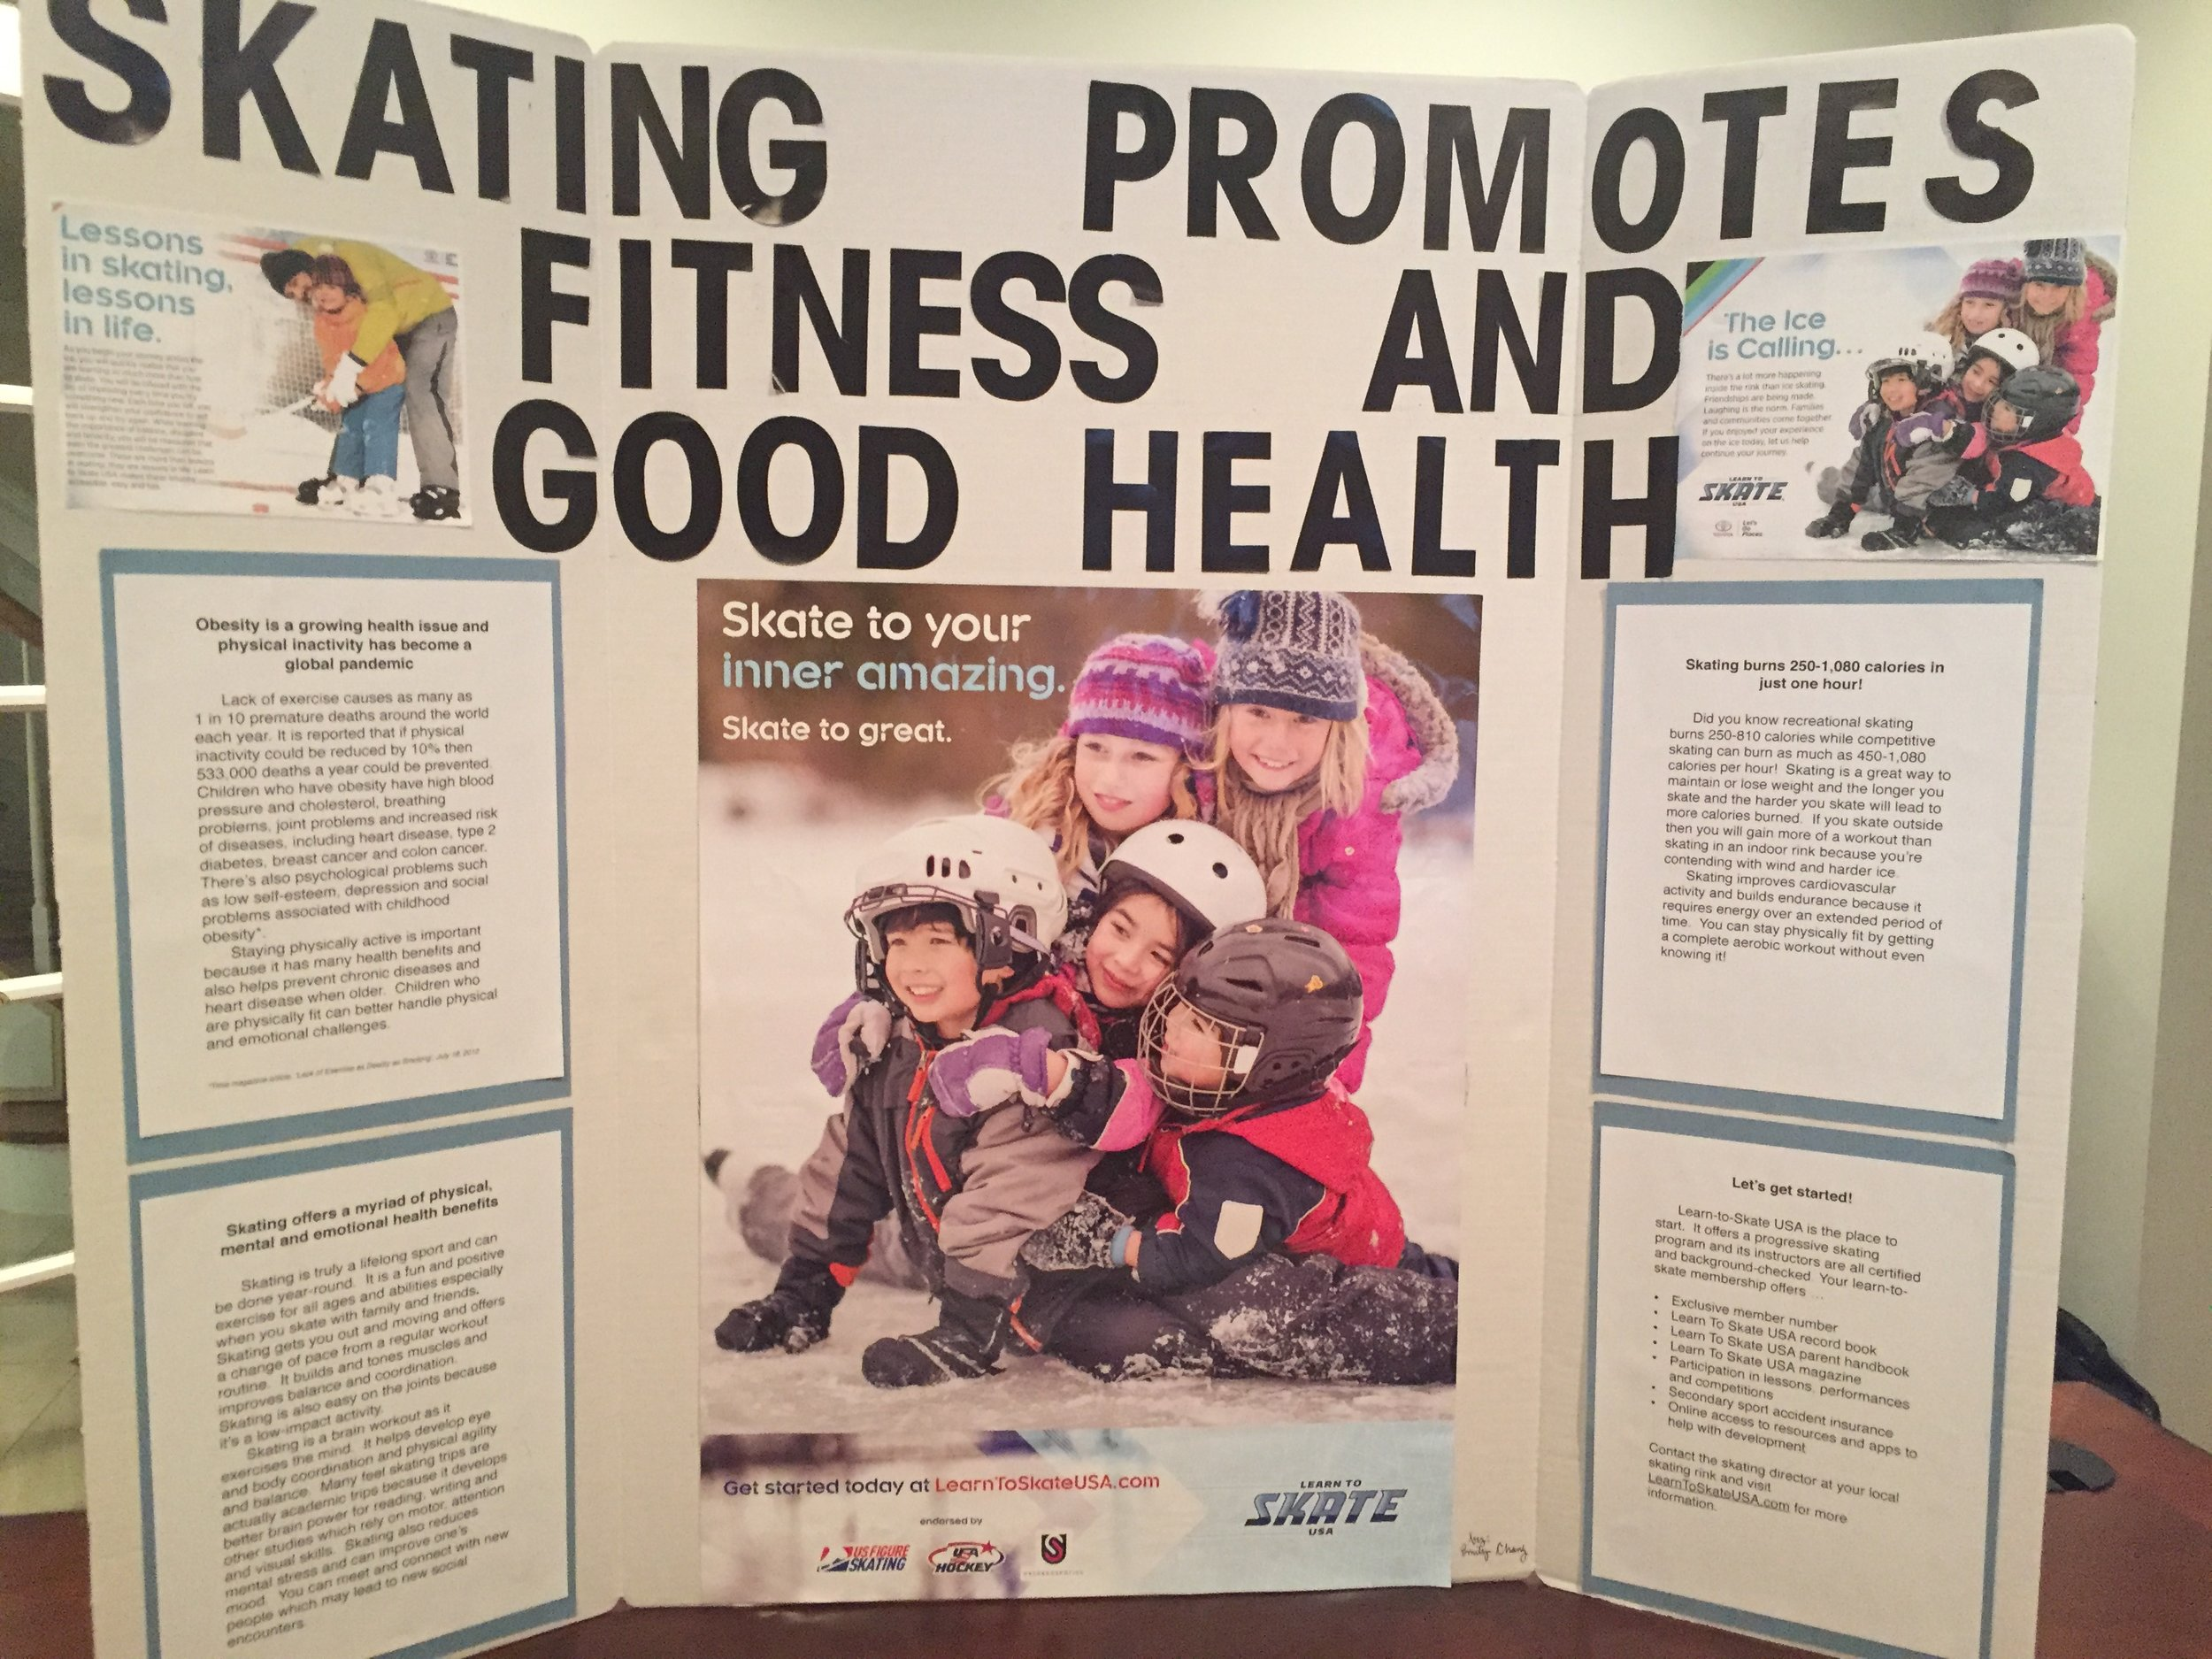 My poster board presentation on health benefits of skating